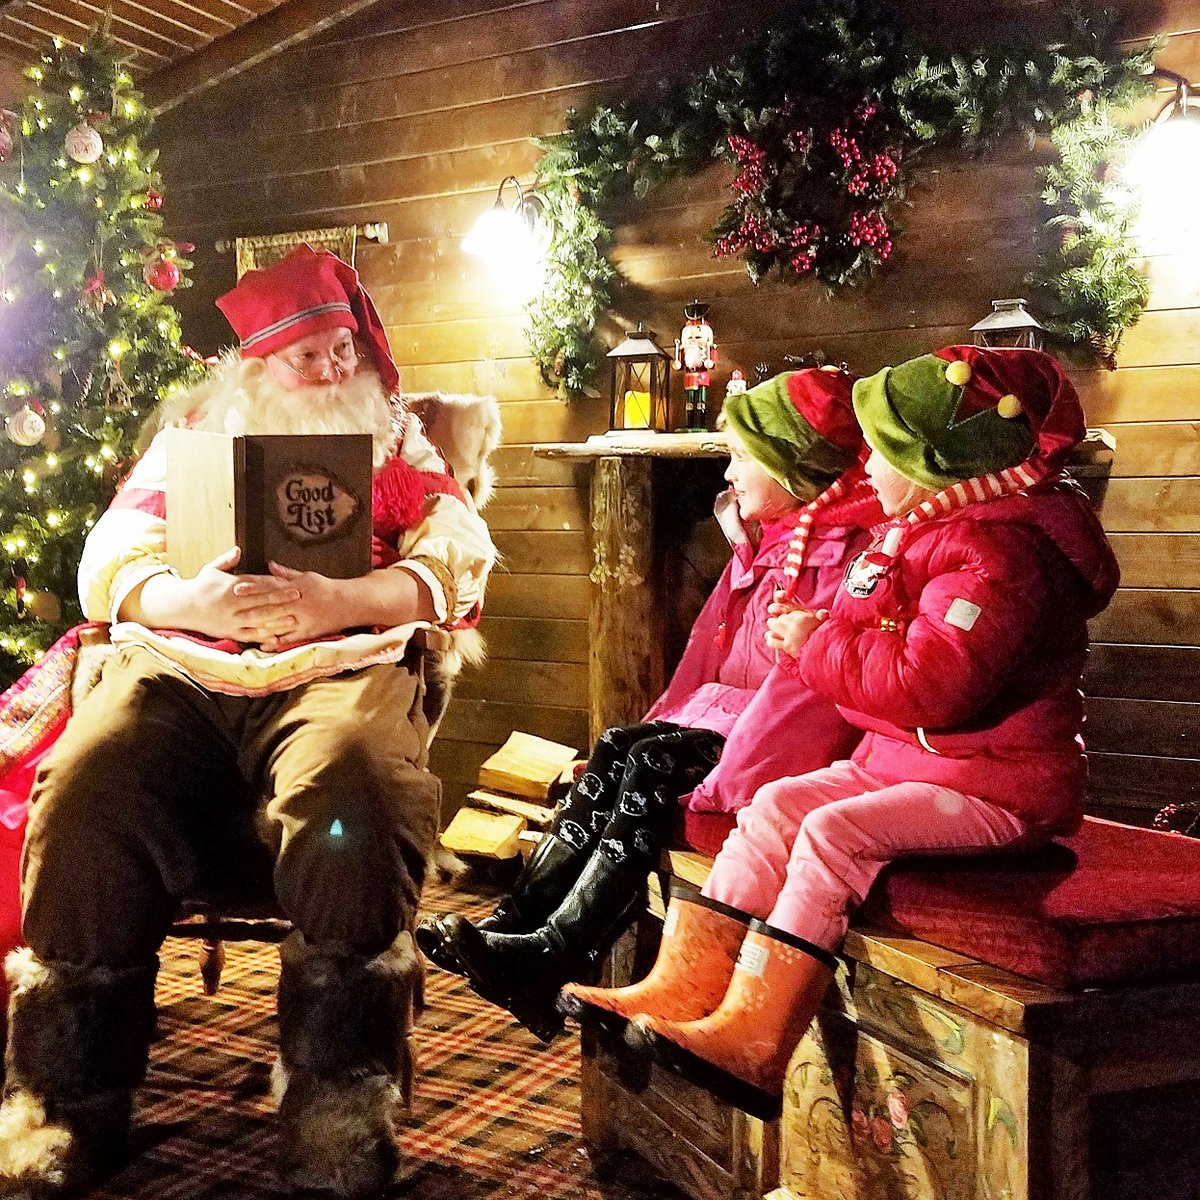 """AD   """"Come closer - I have a little secret to tell you - there is an enchanted door known only to fairy folk. I know for I have been..."""" - a magical experience from start to finish #laplanduk #ChristmasIsComing http://bit.ly/2AQmc6Tpic.twitter.com/mipoBEx8OQ"""